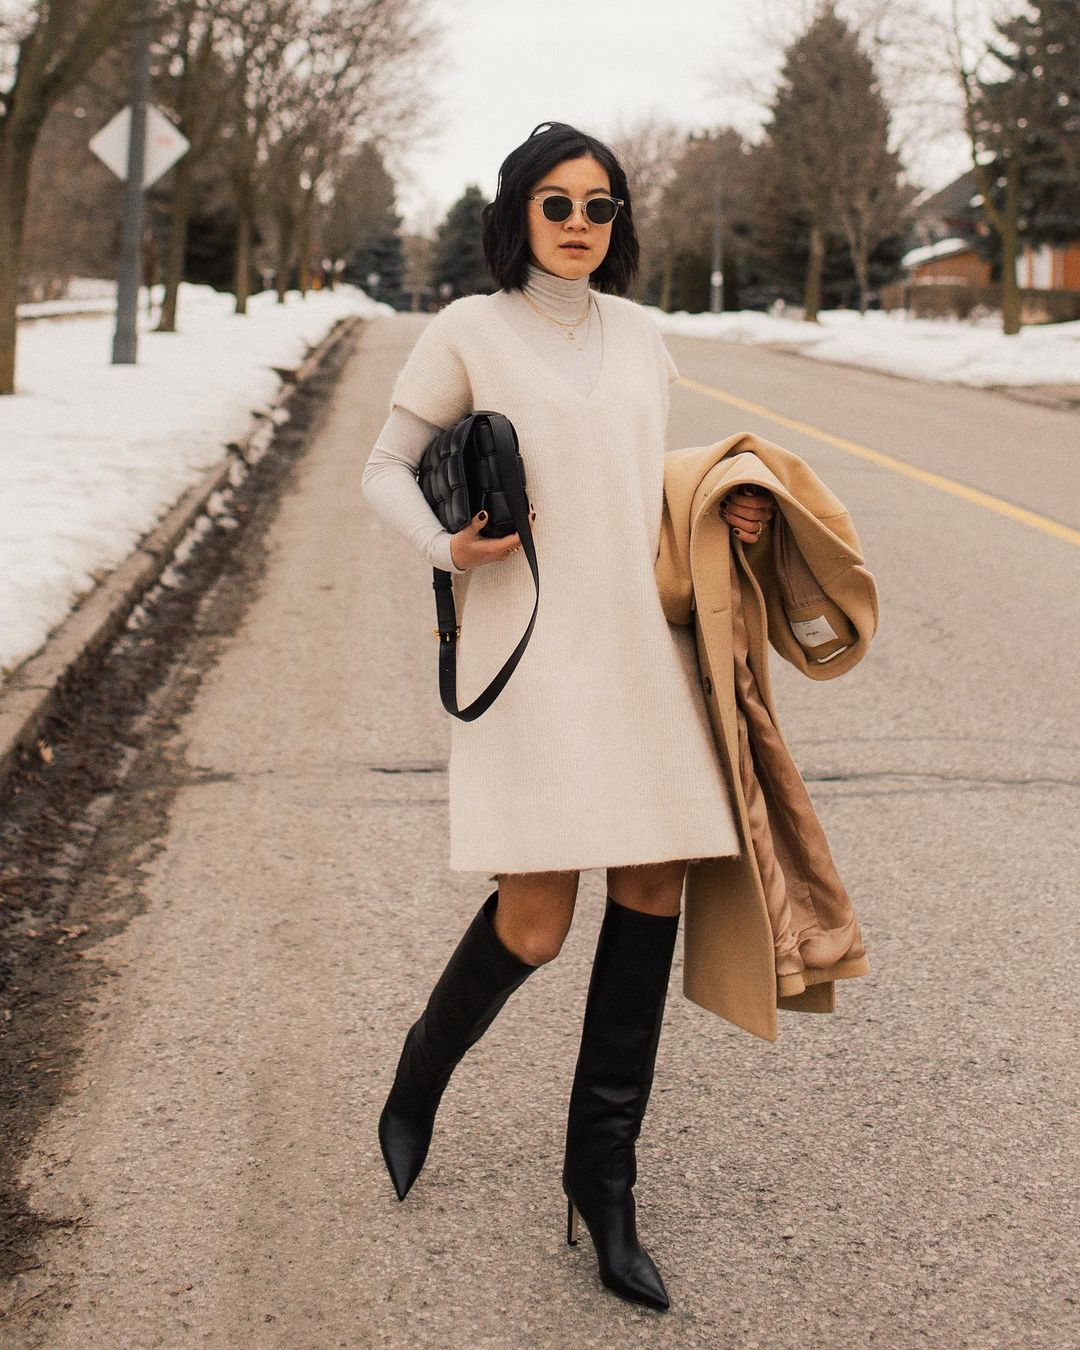 Here's How to Elevate Your Sweaterdress This Fall — @jessundecided Instagram outfit idea with a white sweater dress, layered turtleneck, camel coat, and black knee-high boots with pointed toe